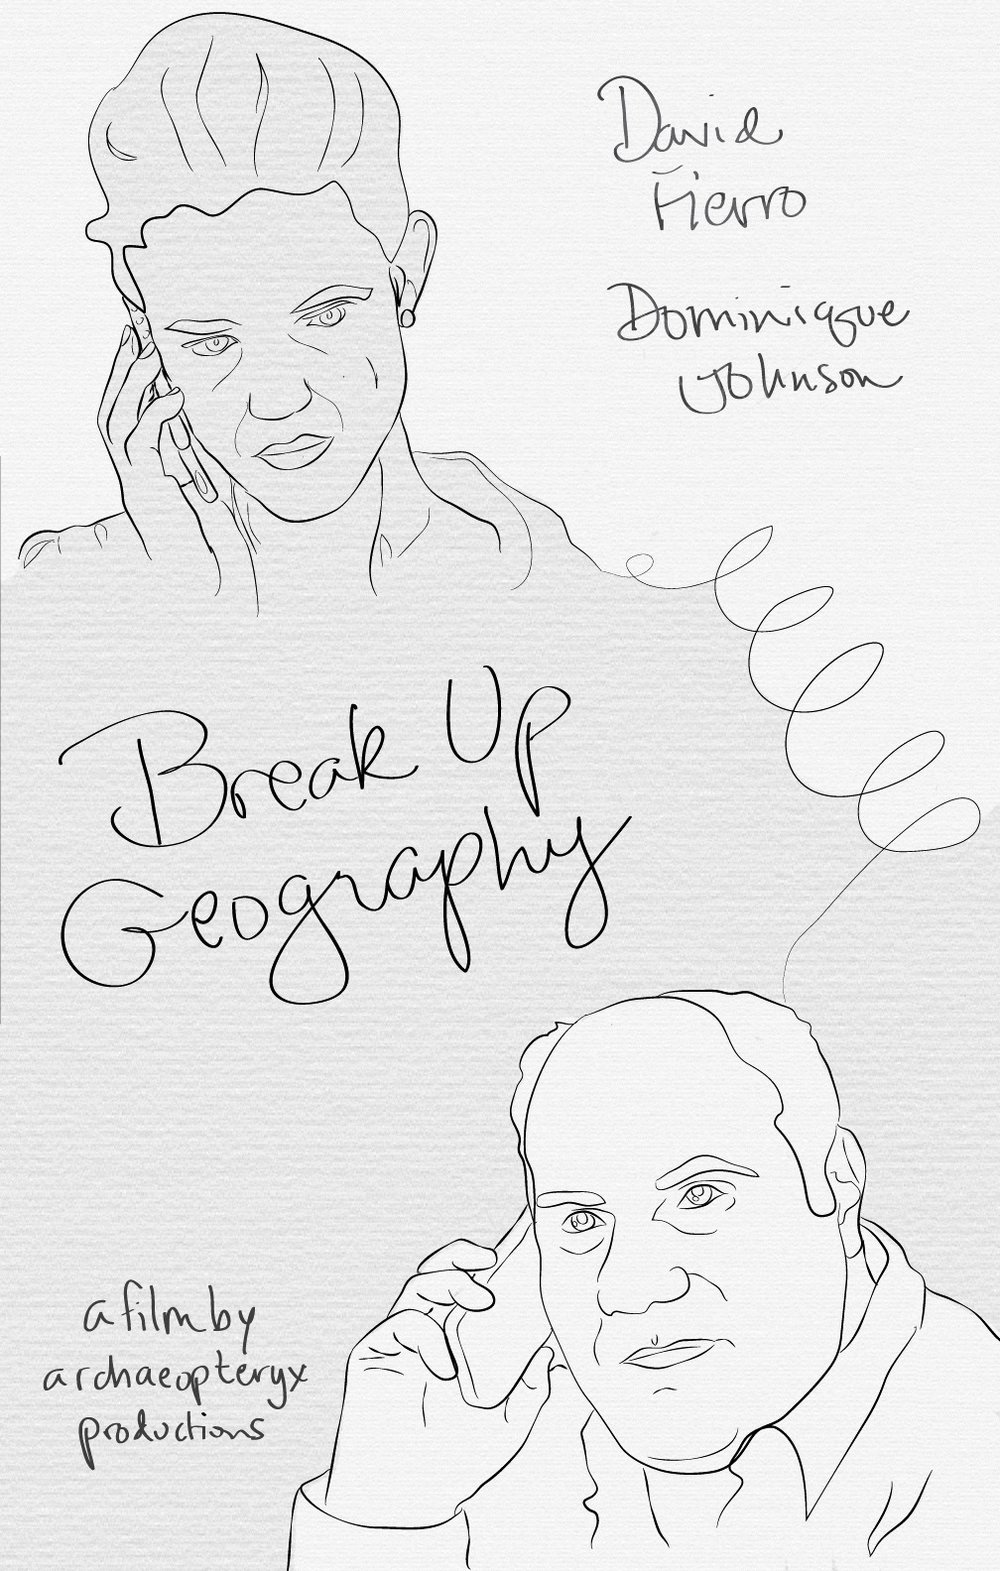 Break Up Geography